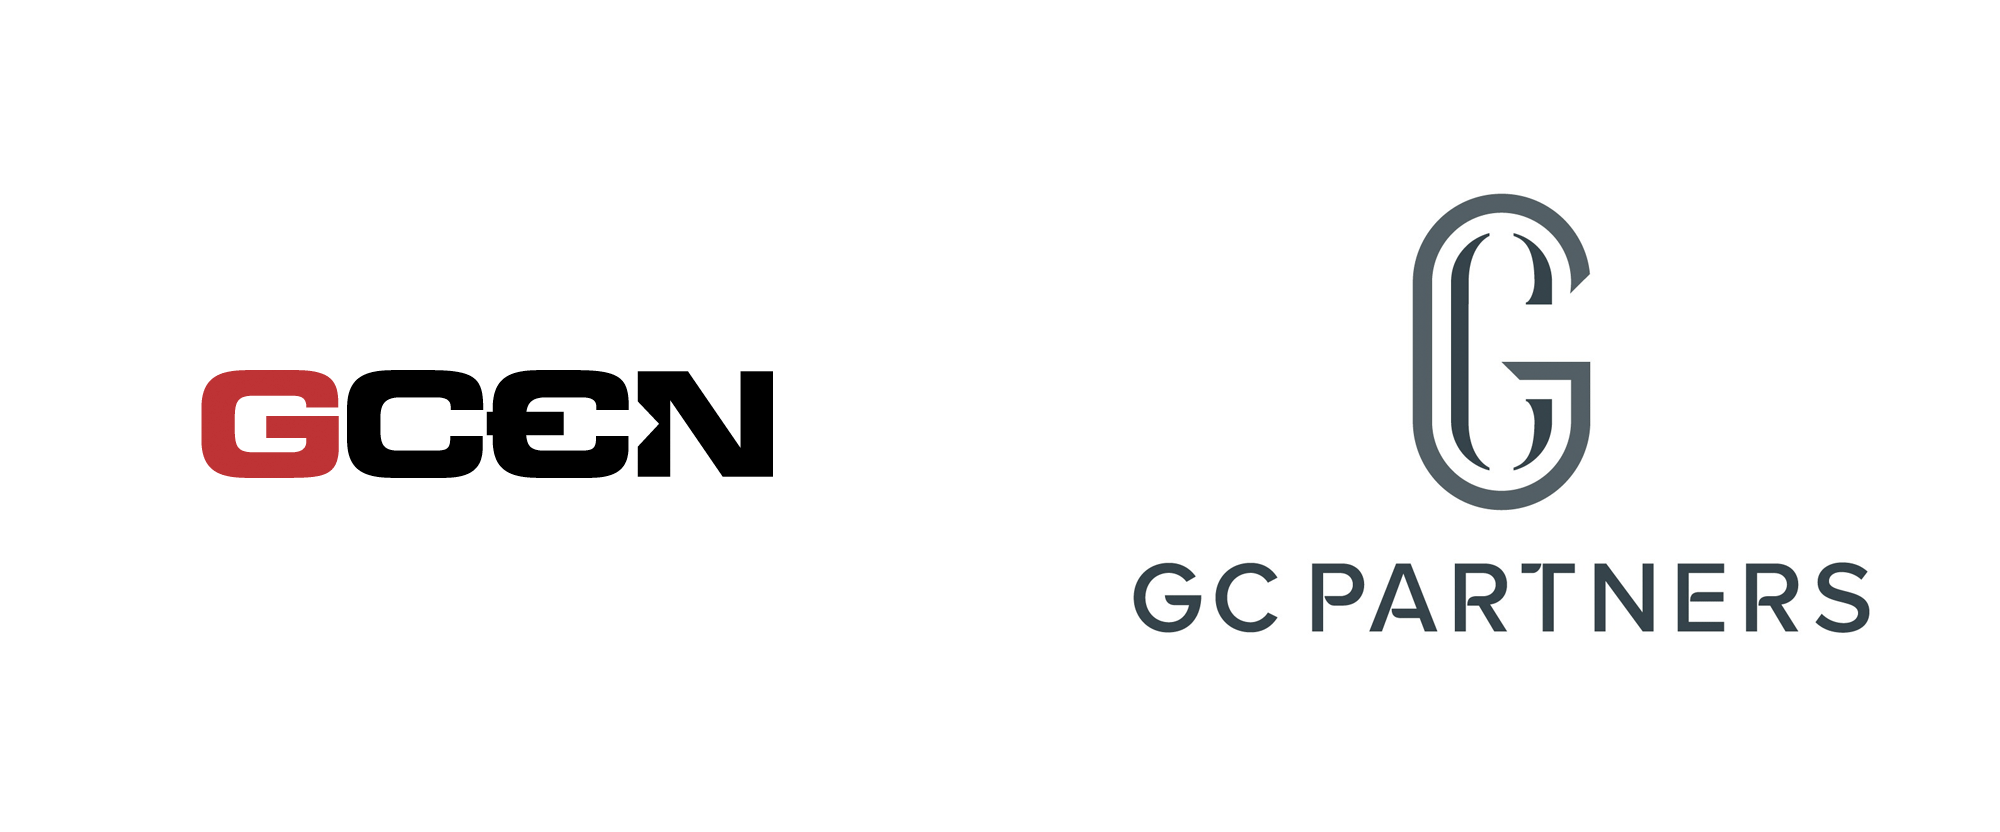 New Logo and Identity for GC Partners by Brandpie